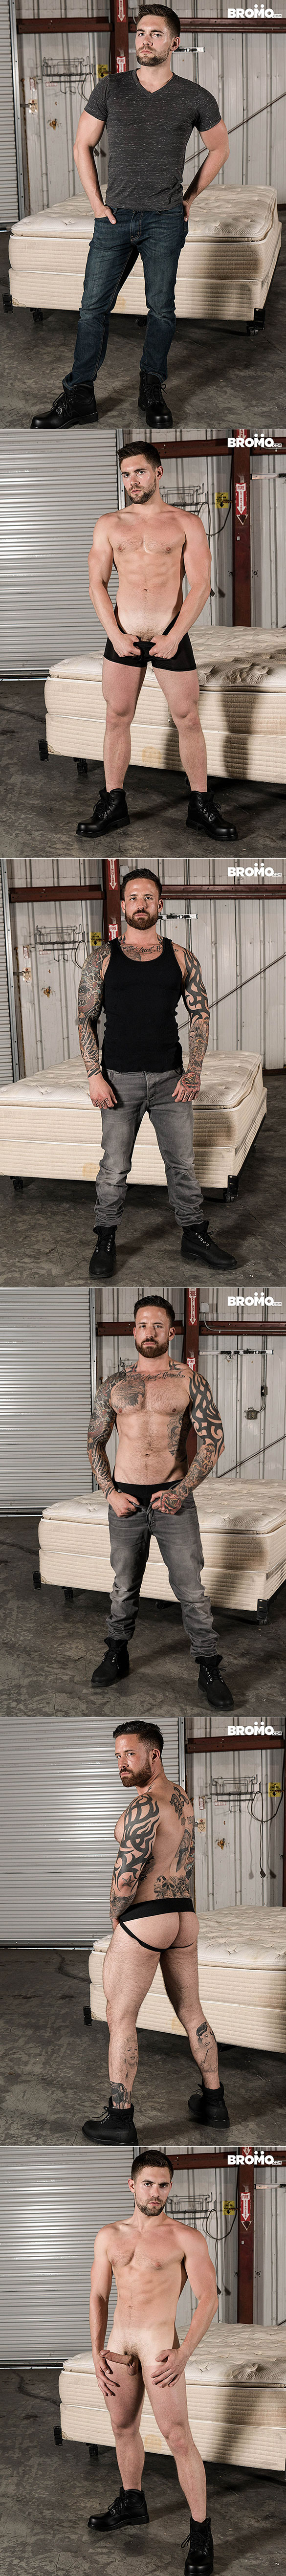 """Bromo: Jordan Levine bangs Griffin Barrows in """"Warehouse Chronicles: Spanked Raw"""""""